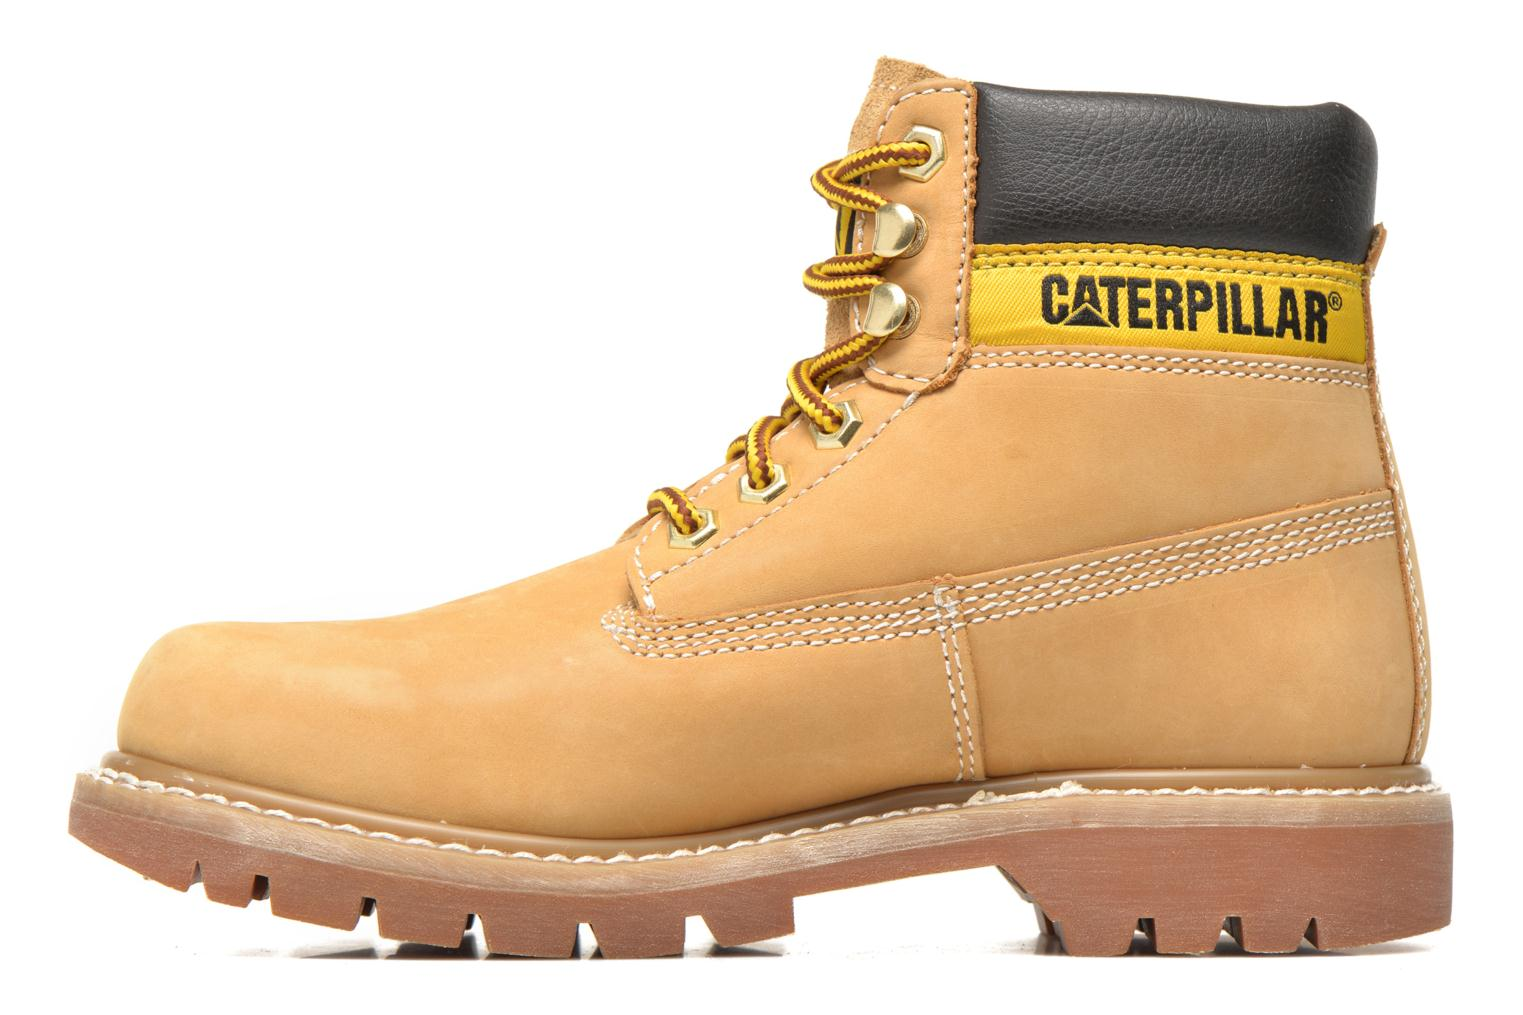 Bottines et boots Caterpillar COLORADO W Beige vue face